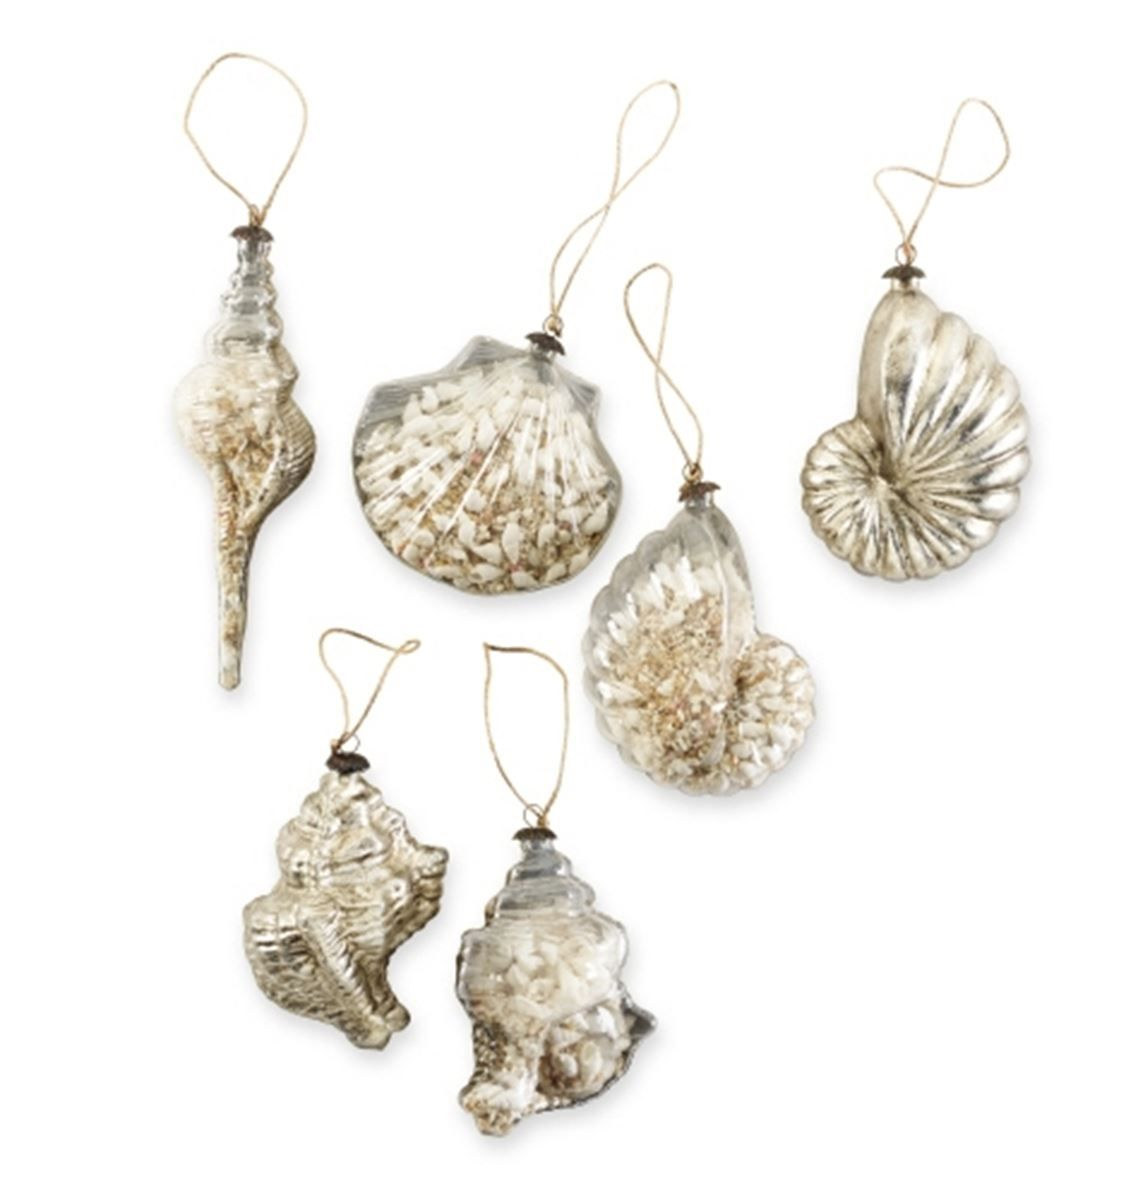 Shell Filled Glass Ornament Choice Of 4 At Seasideinspired.com Beach Ocean Home Decor